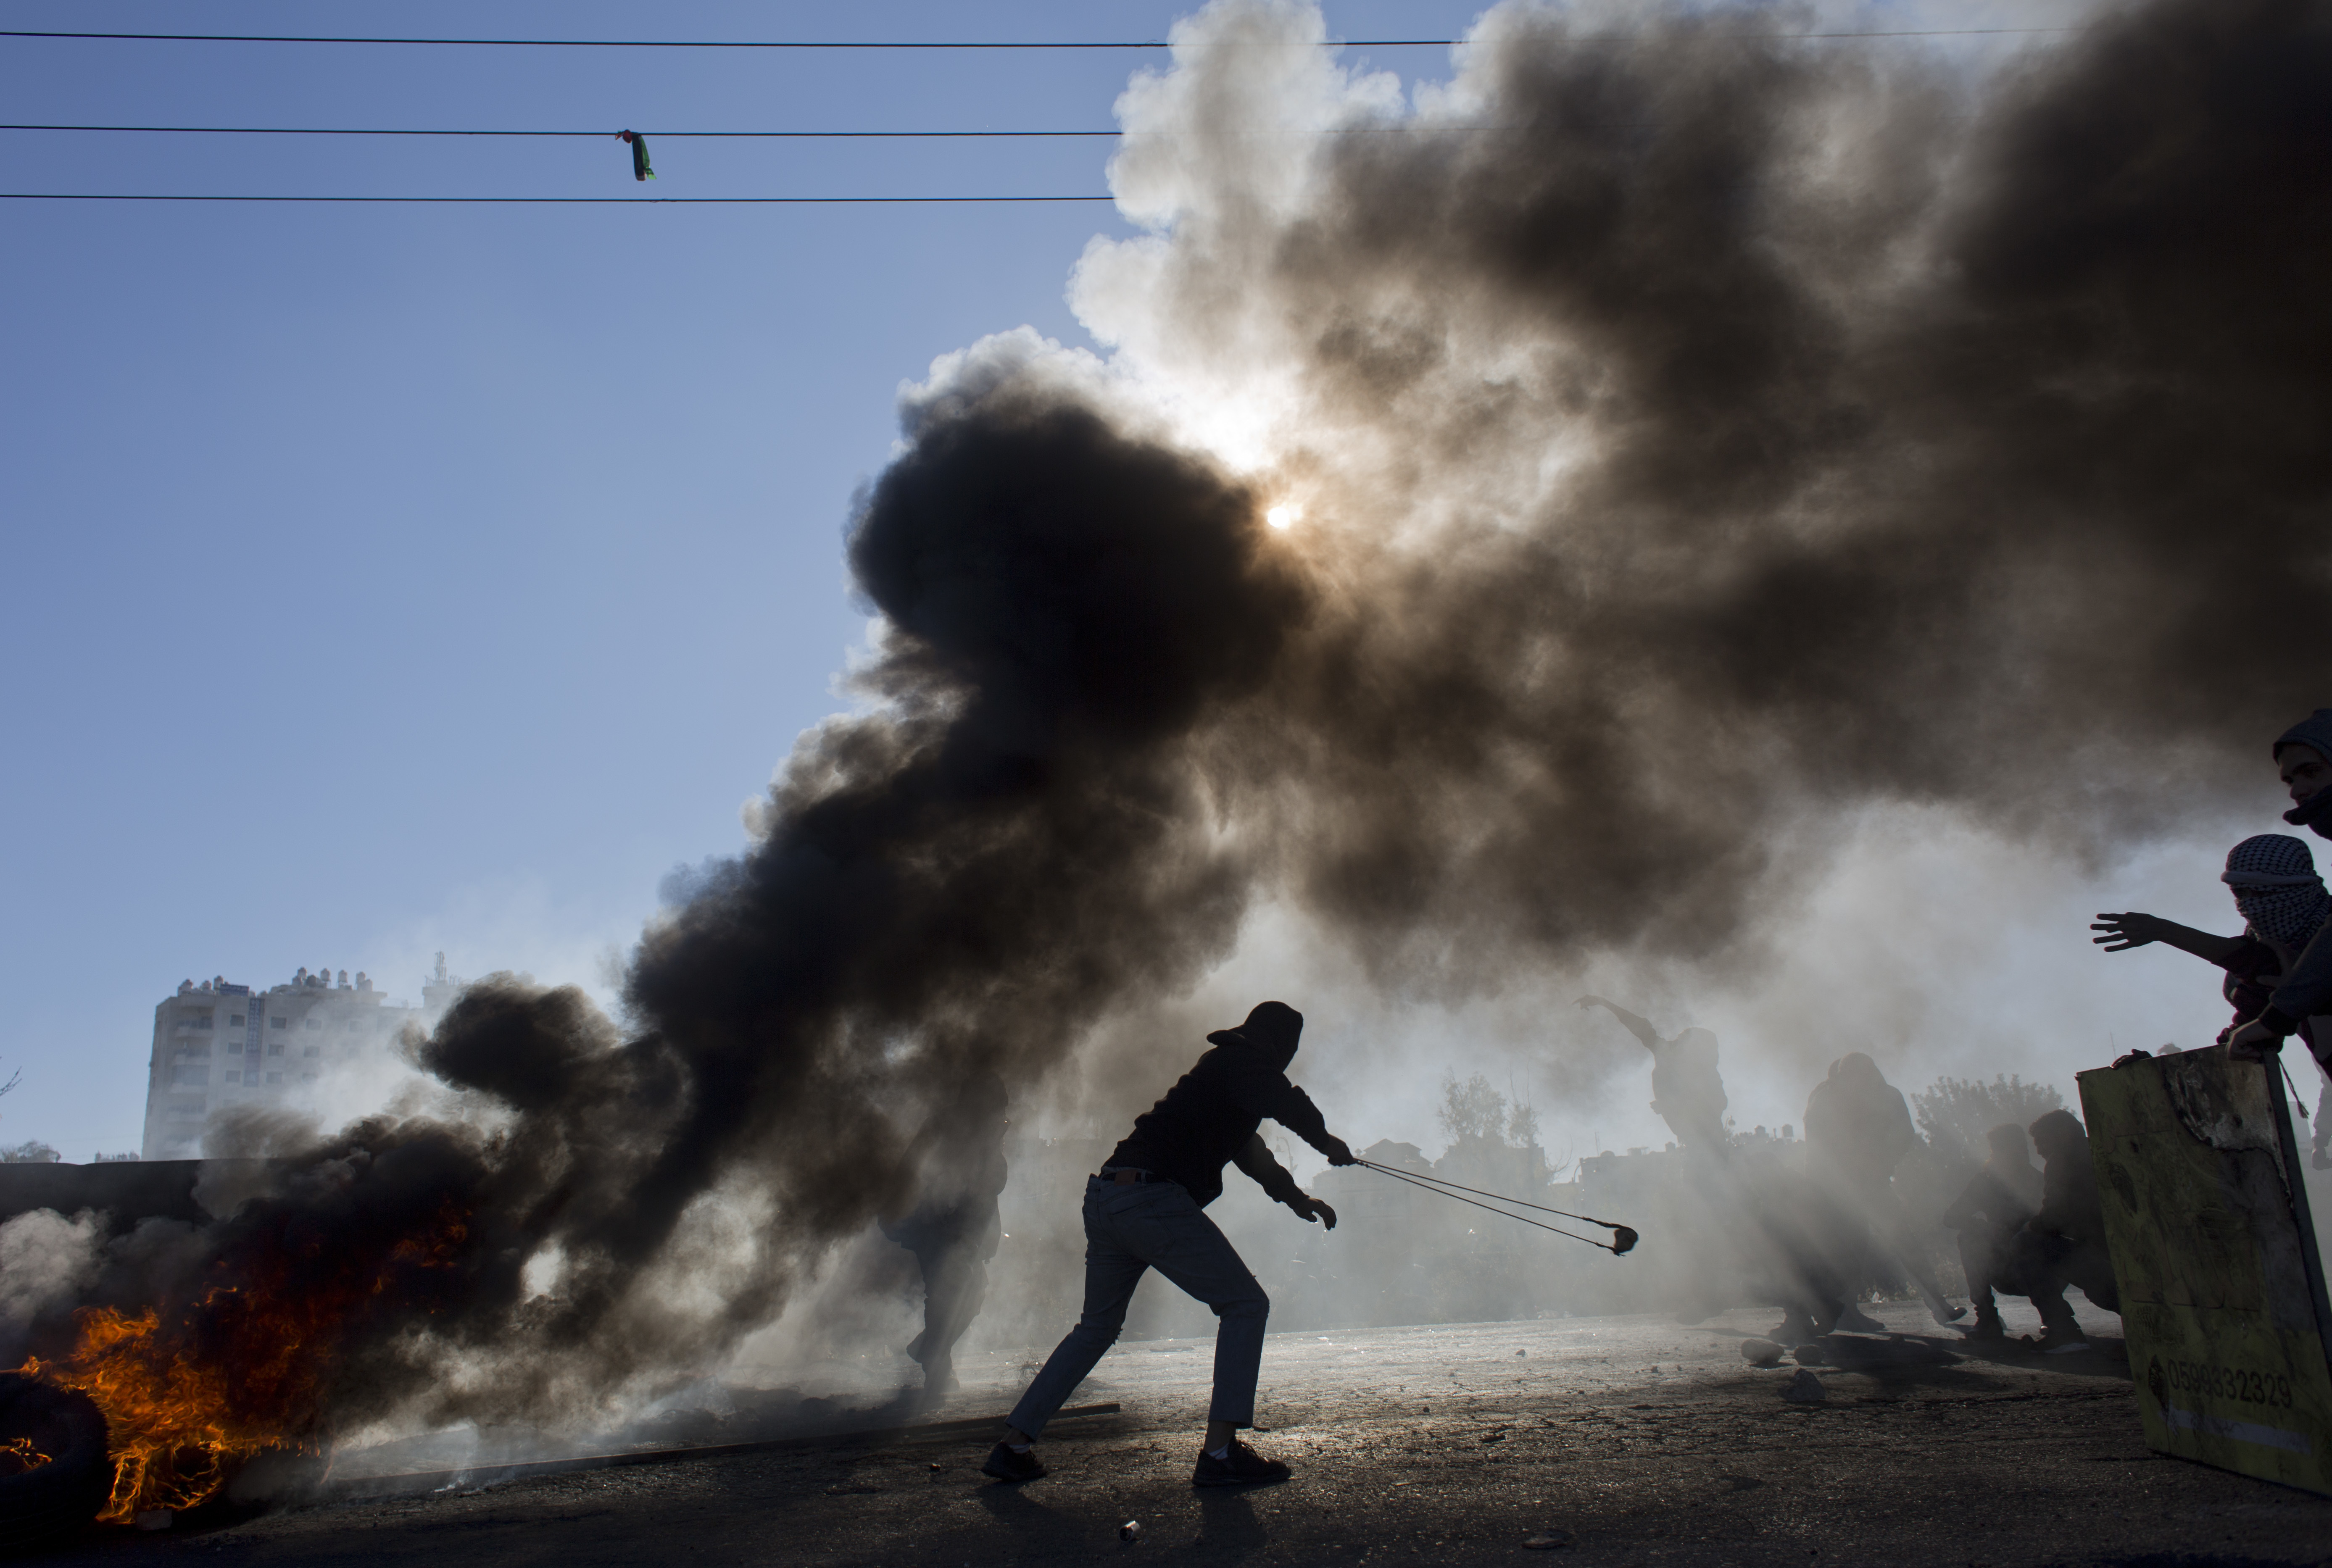 FILE - Palestinian protesters burn tires and clash with Israeli troops following protests against U.S. President Donald Trump's decision to recognize Jerusalem as the capital of Israel, in the West Bank city of Ramallah, Dec. 8, 2017.